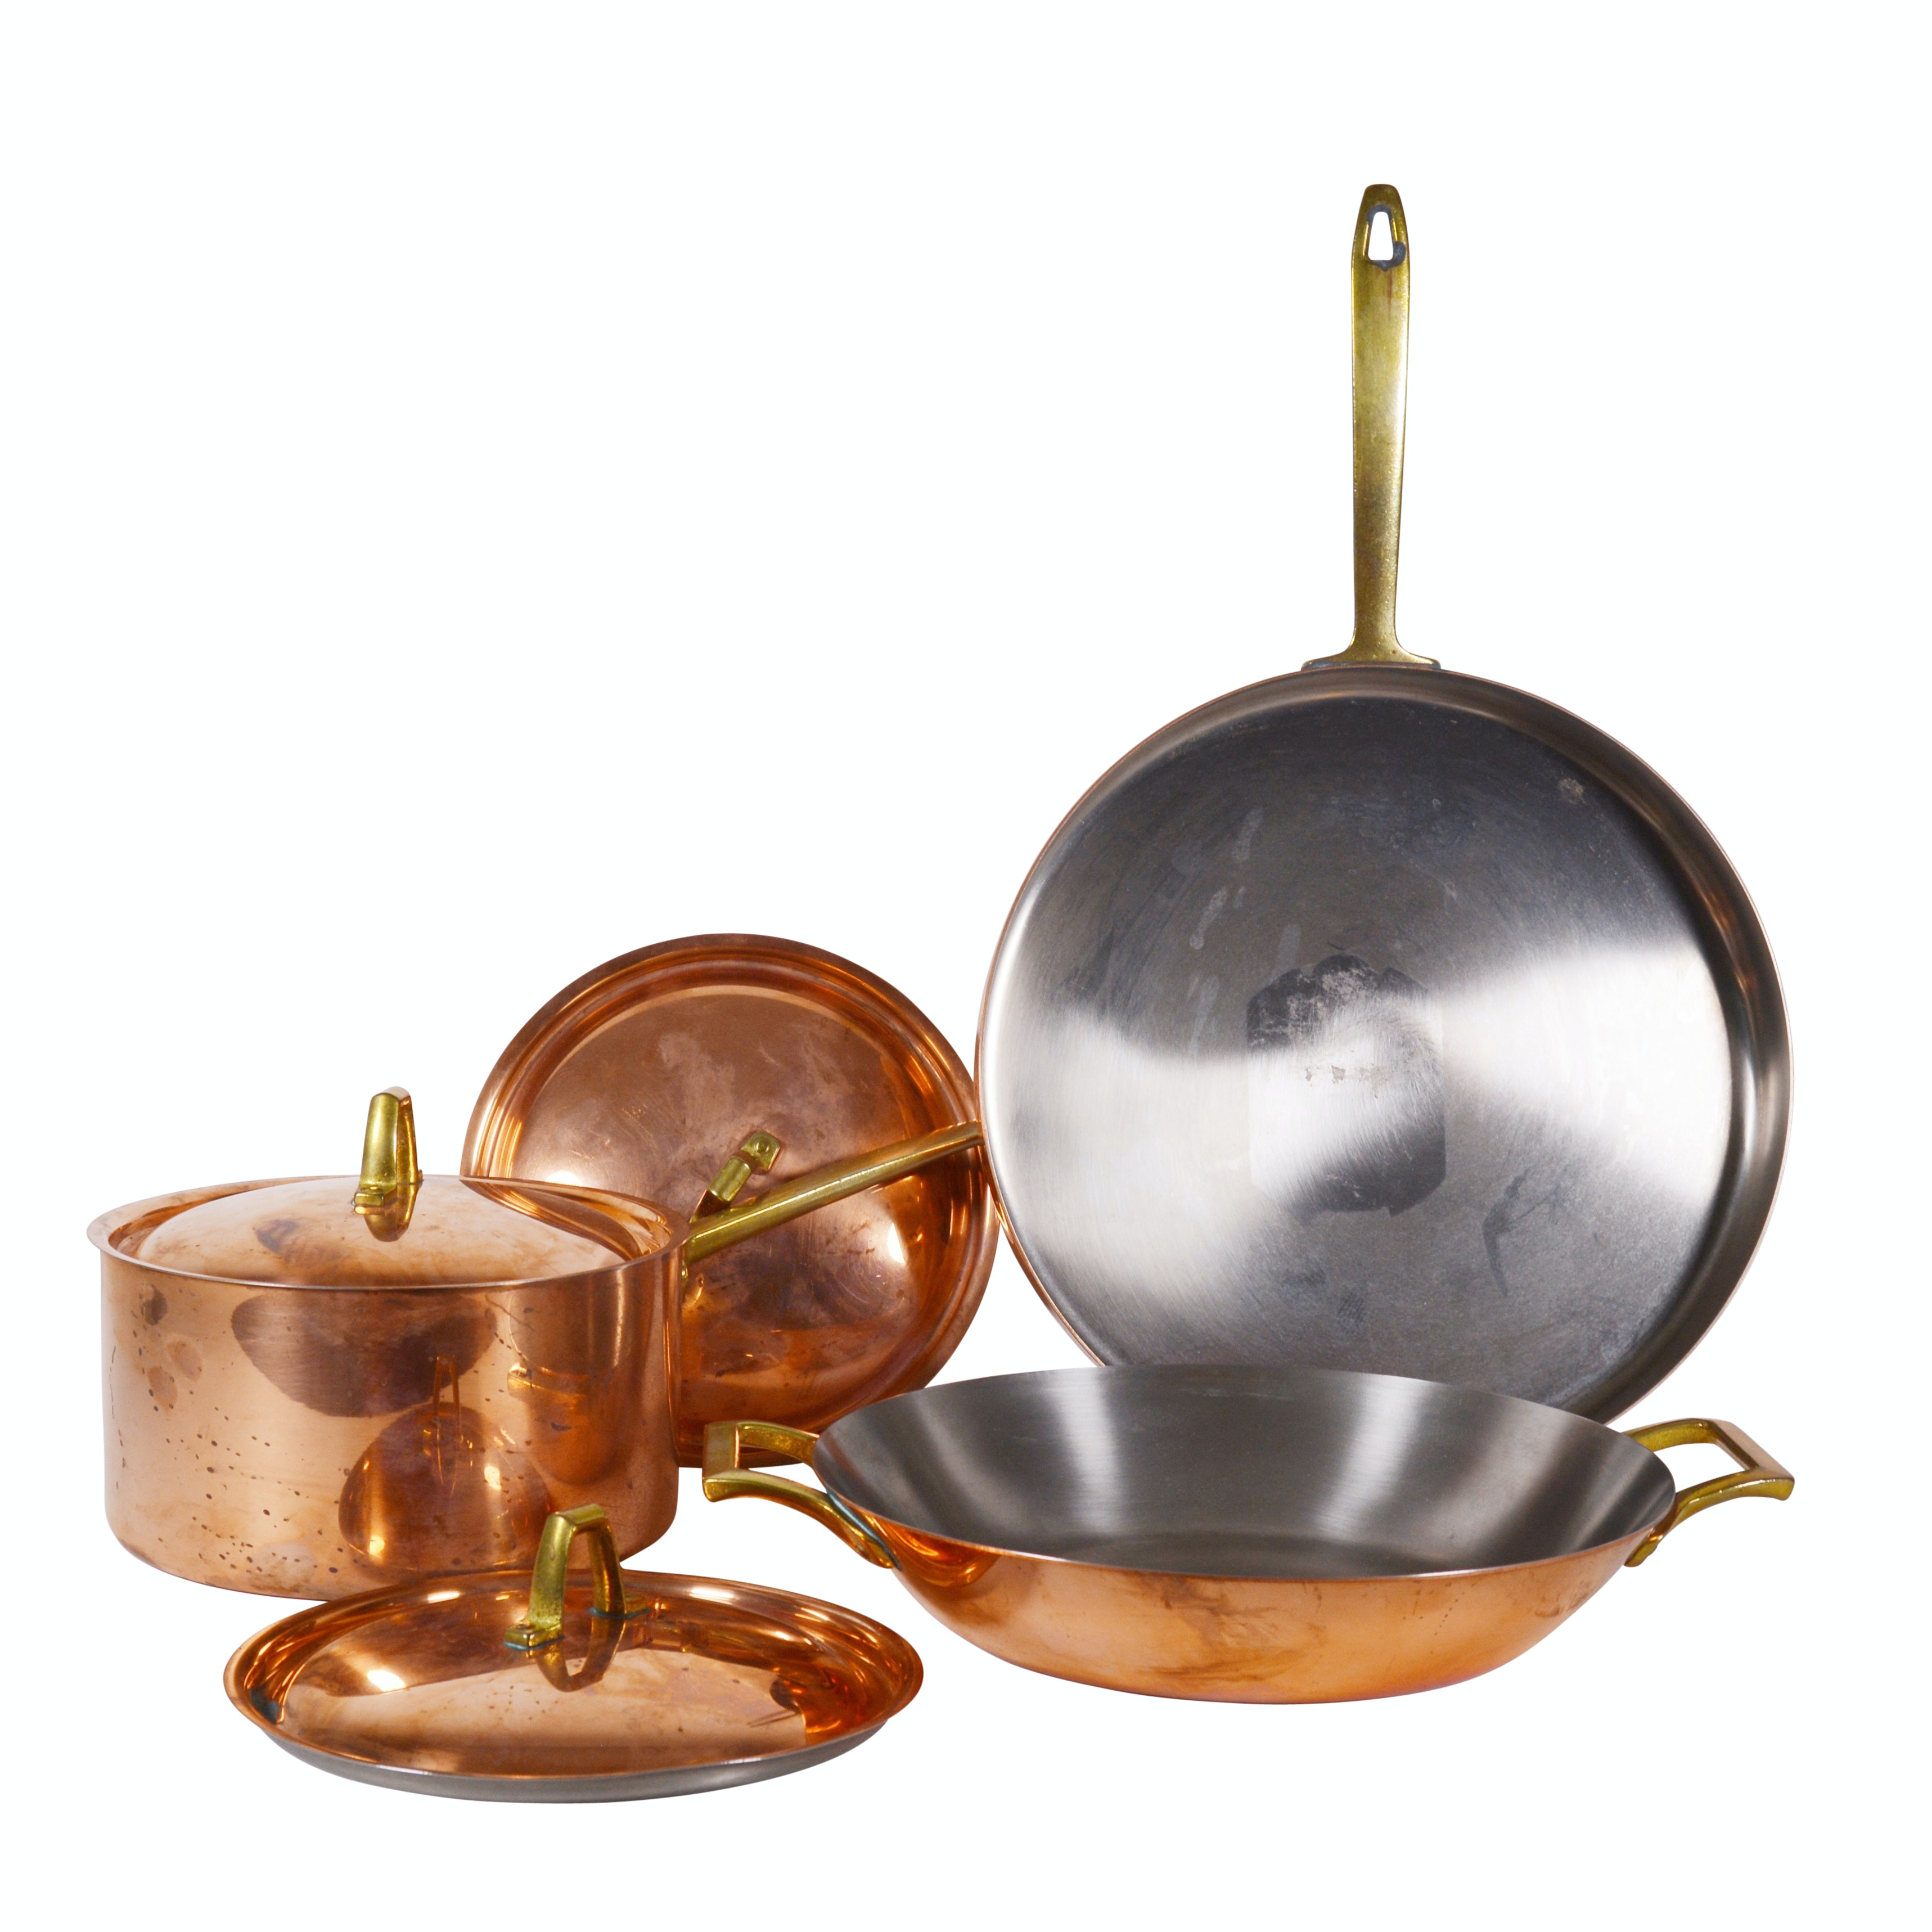 Paul Revere Limited Edition Copper and Brass Pans